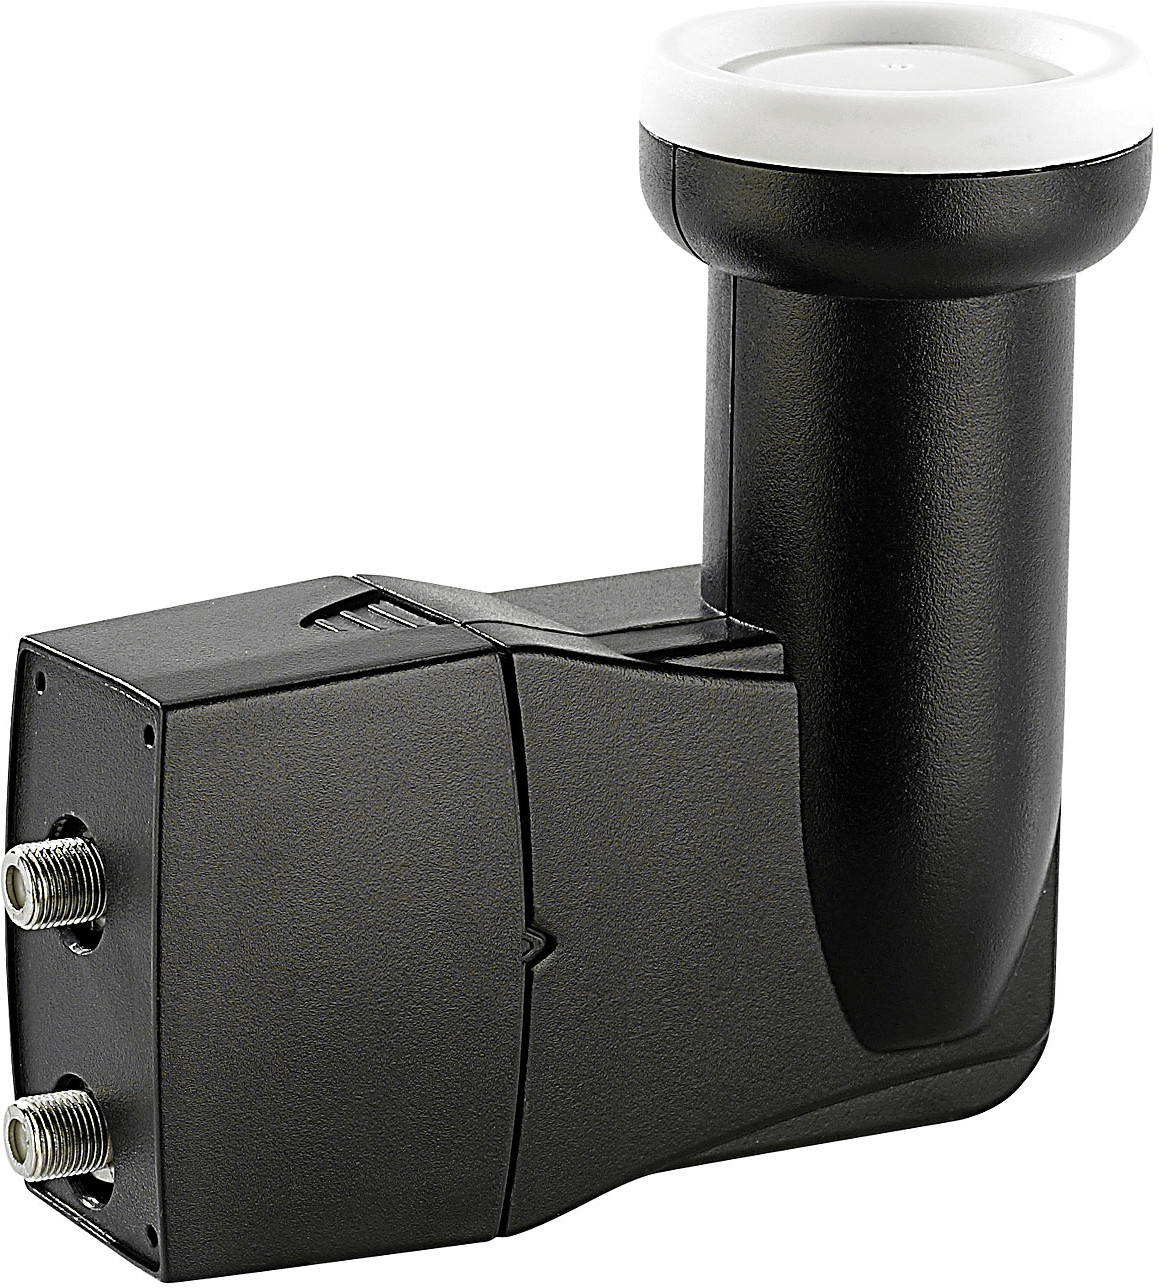 Q-Sonic Universal-TWIN-LNB für digitales Sat.-TV